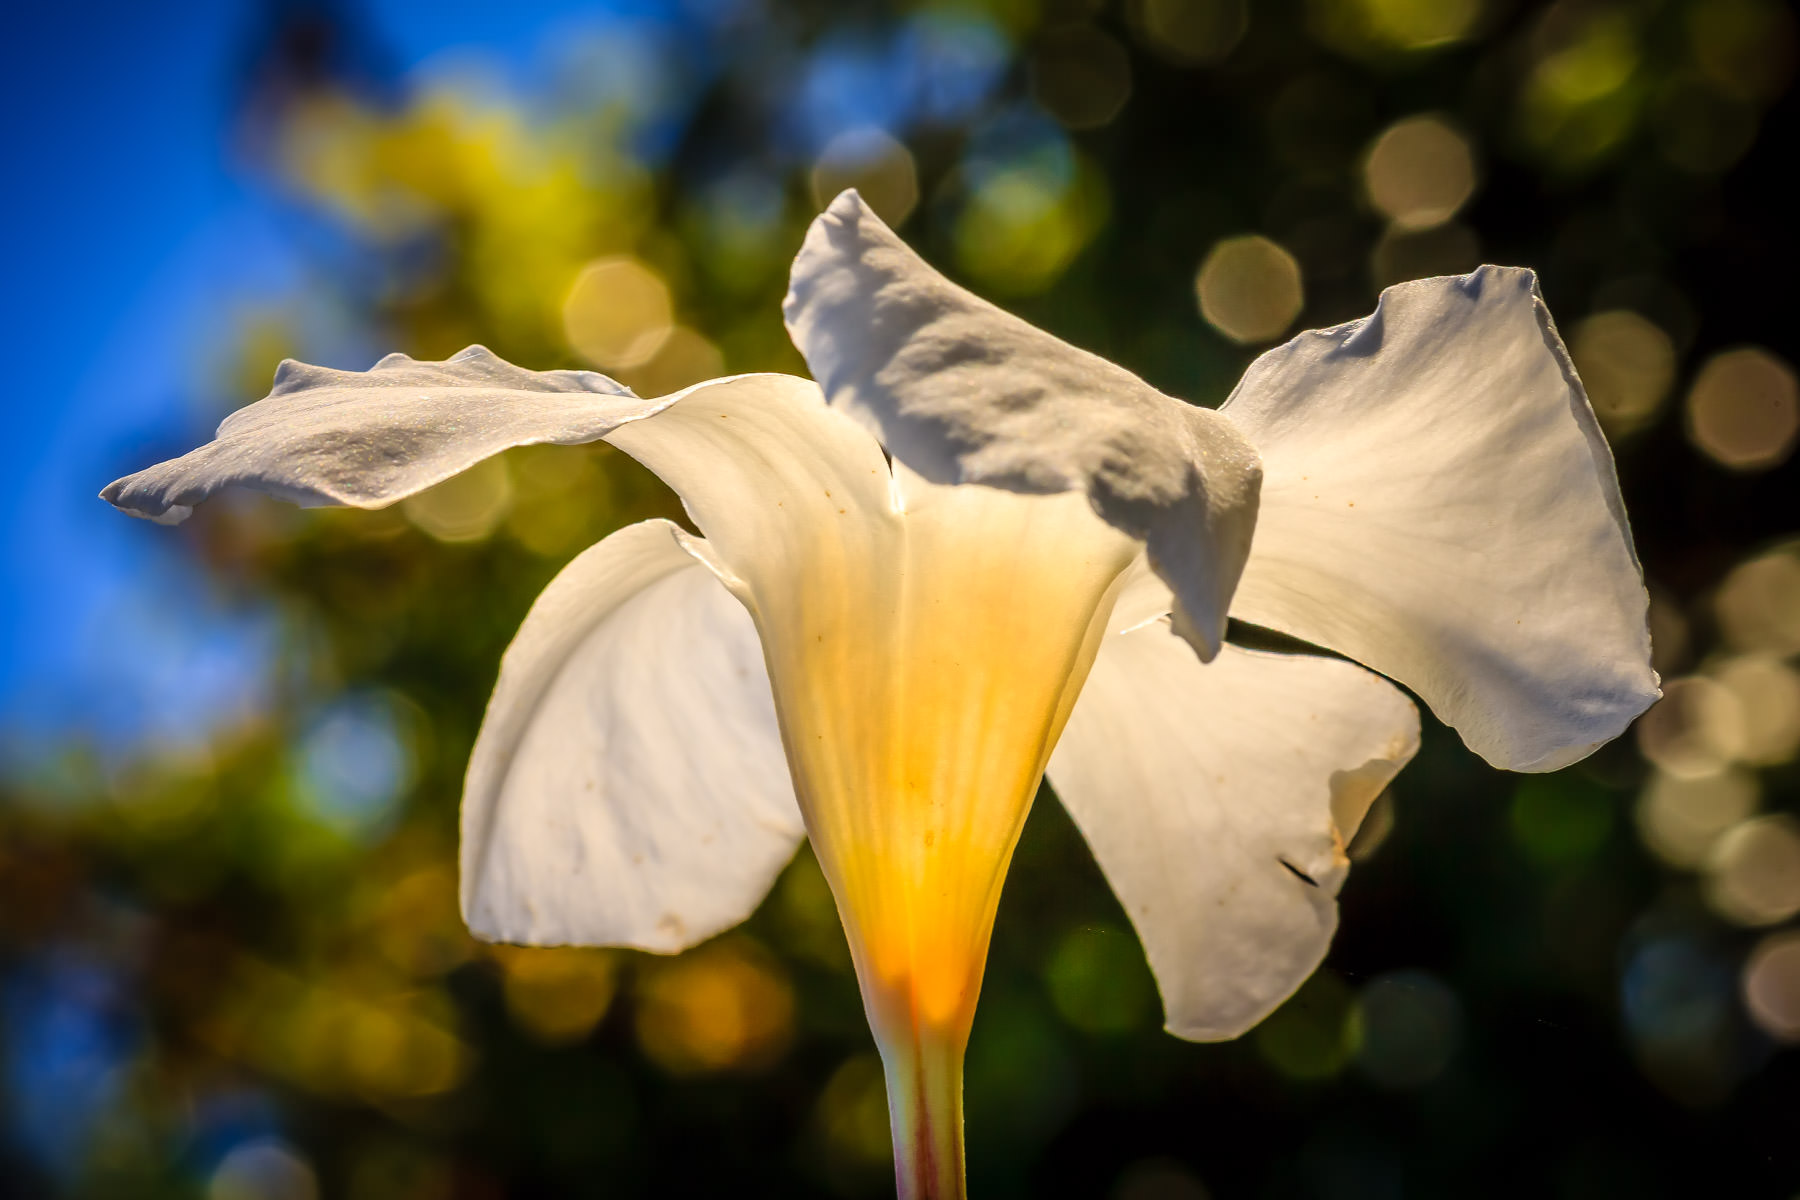 The morning sun illuminates a flower at the Fort Worth Botanic Garden.